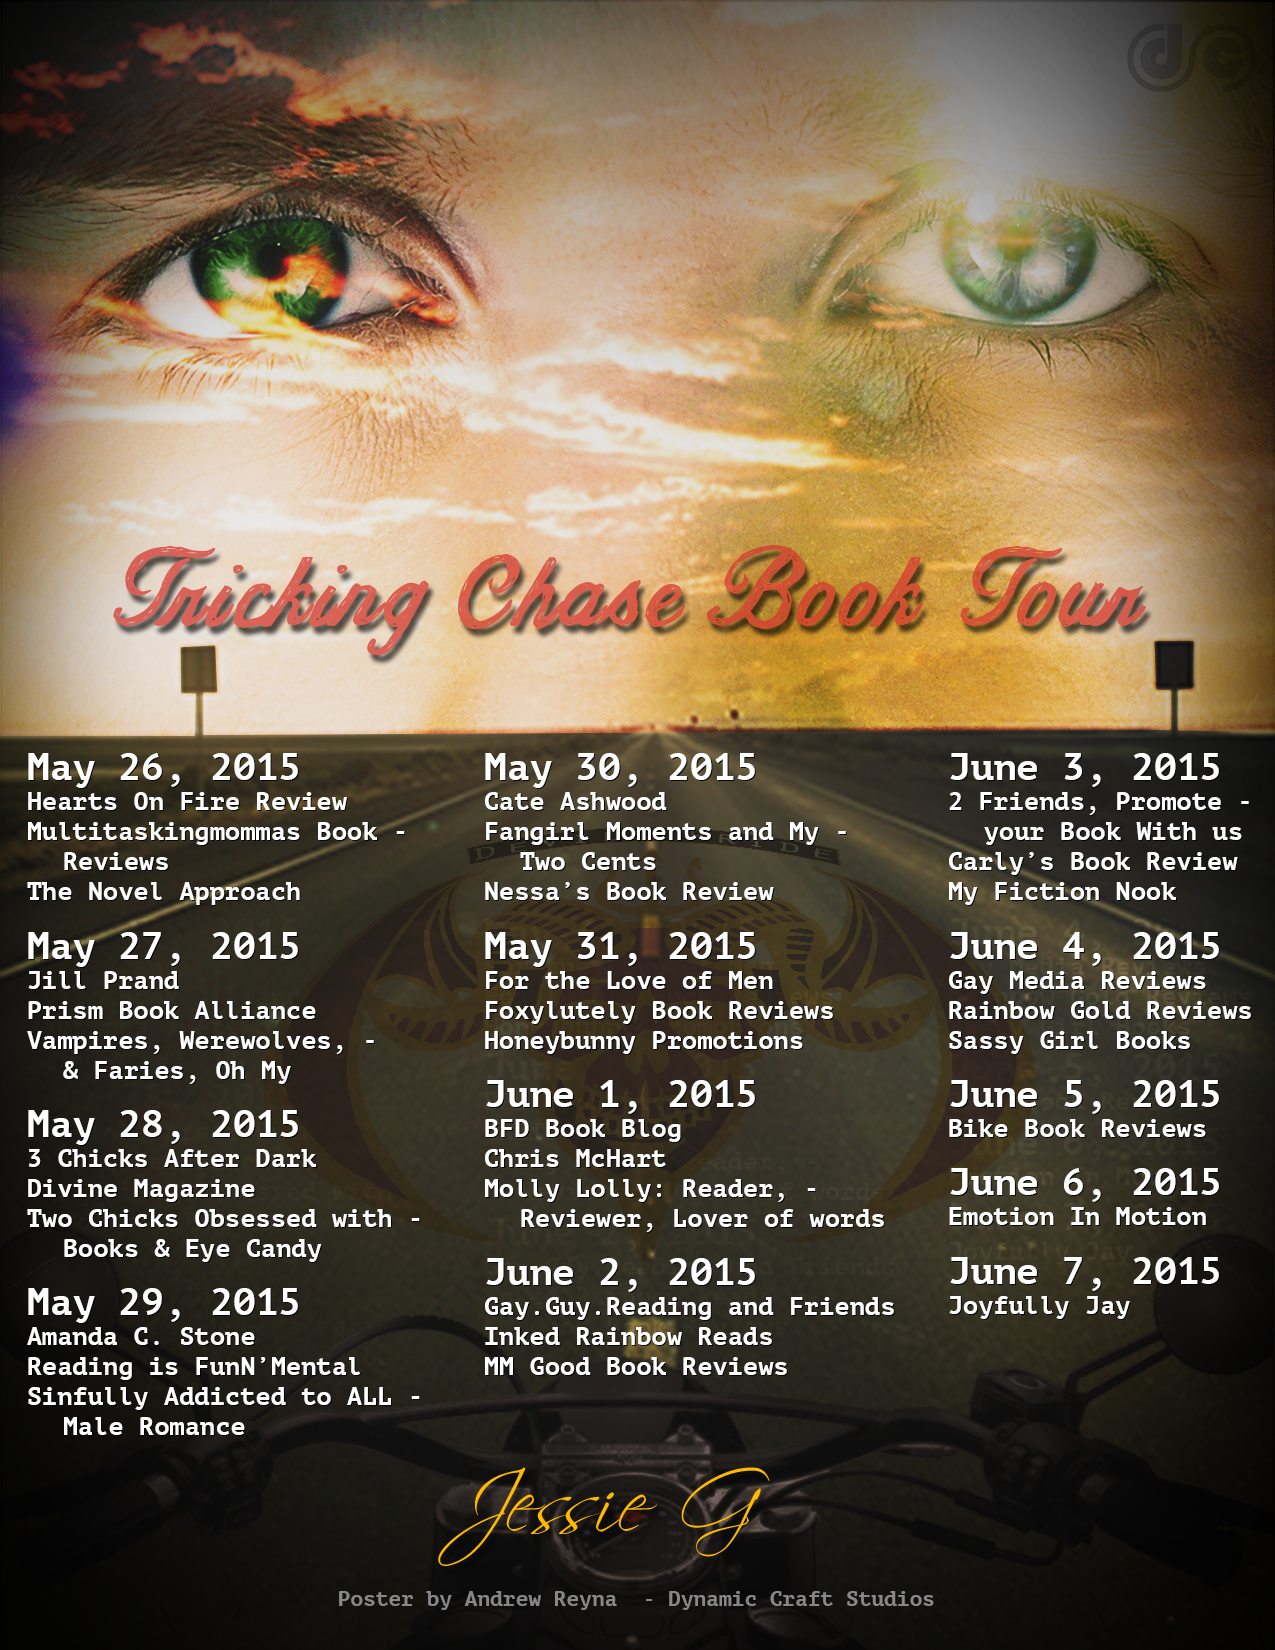 Tricking Chase Book Tour